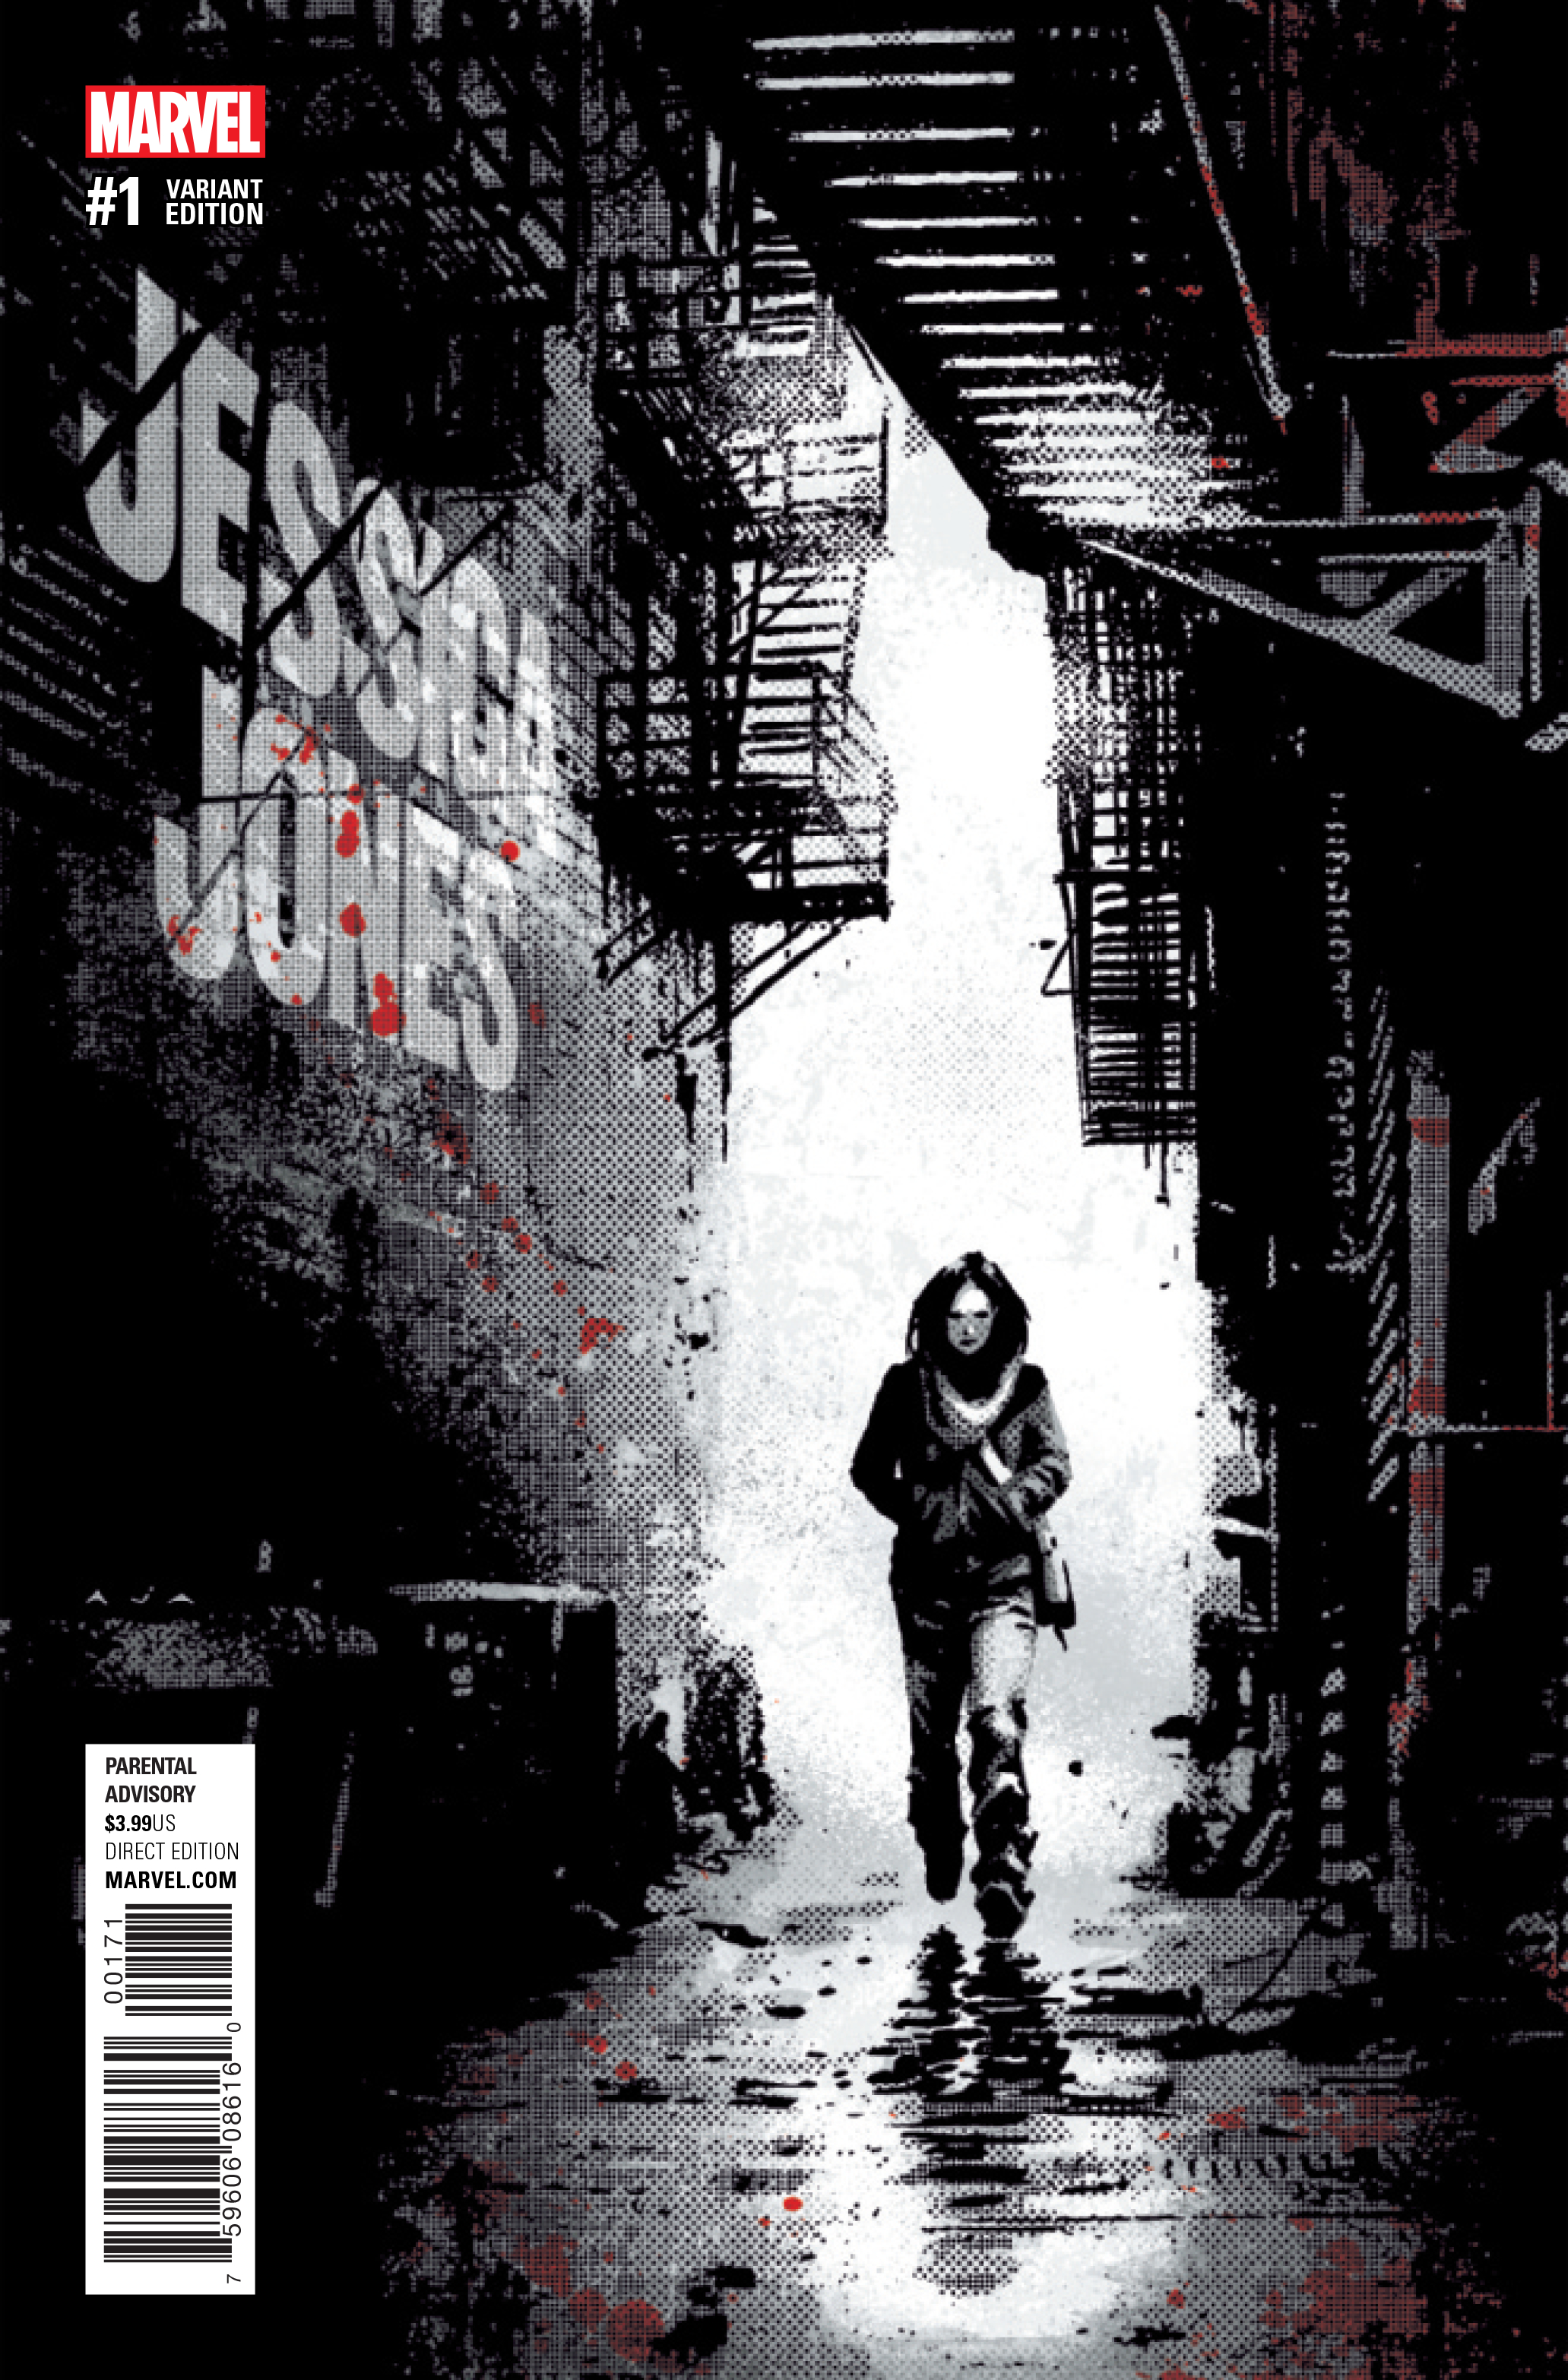 JESSICA JONES #1 AJA VAR NOW